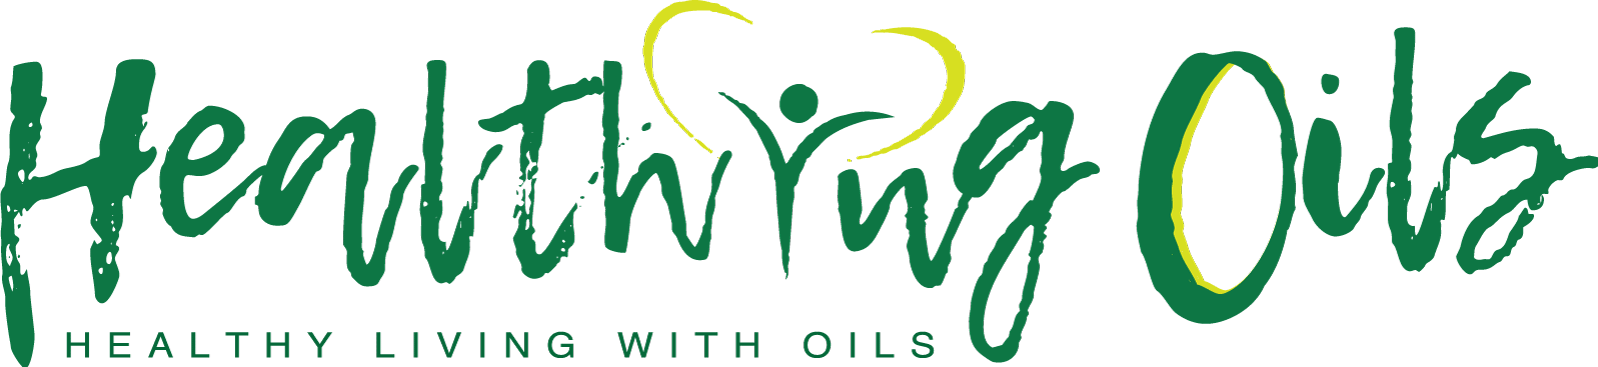 HealthingOils | Healthy Living with Oils